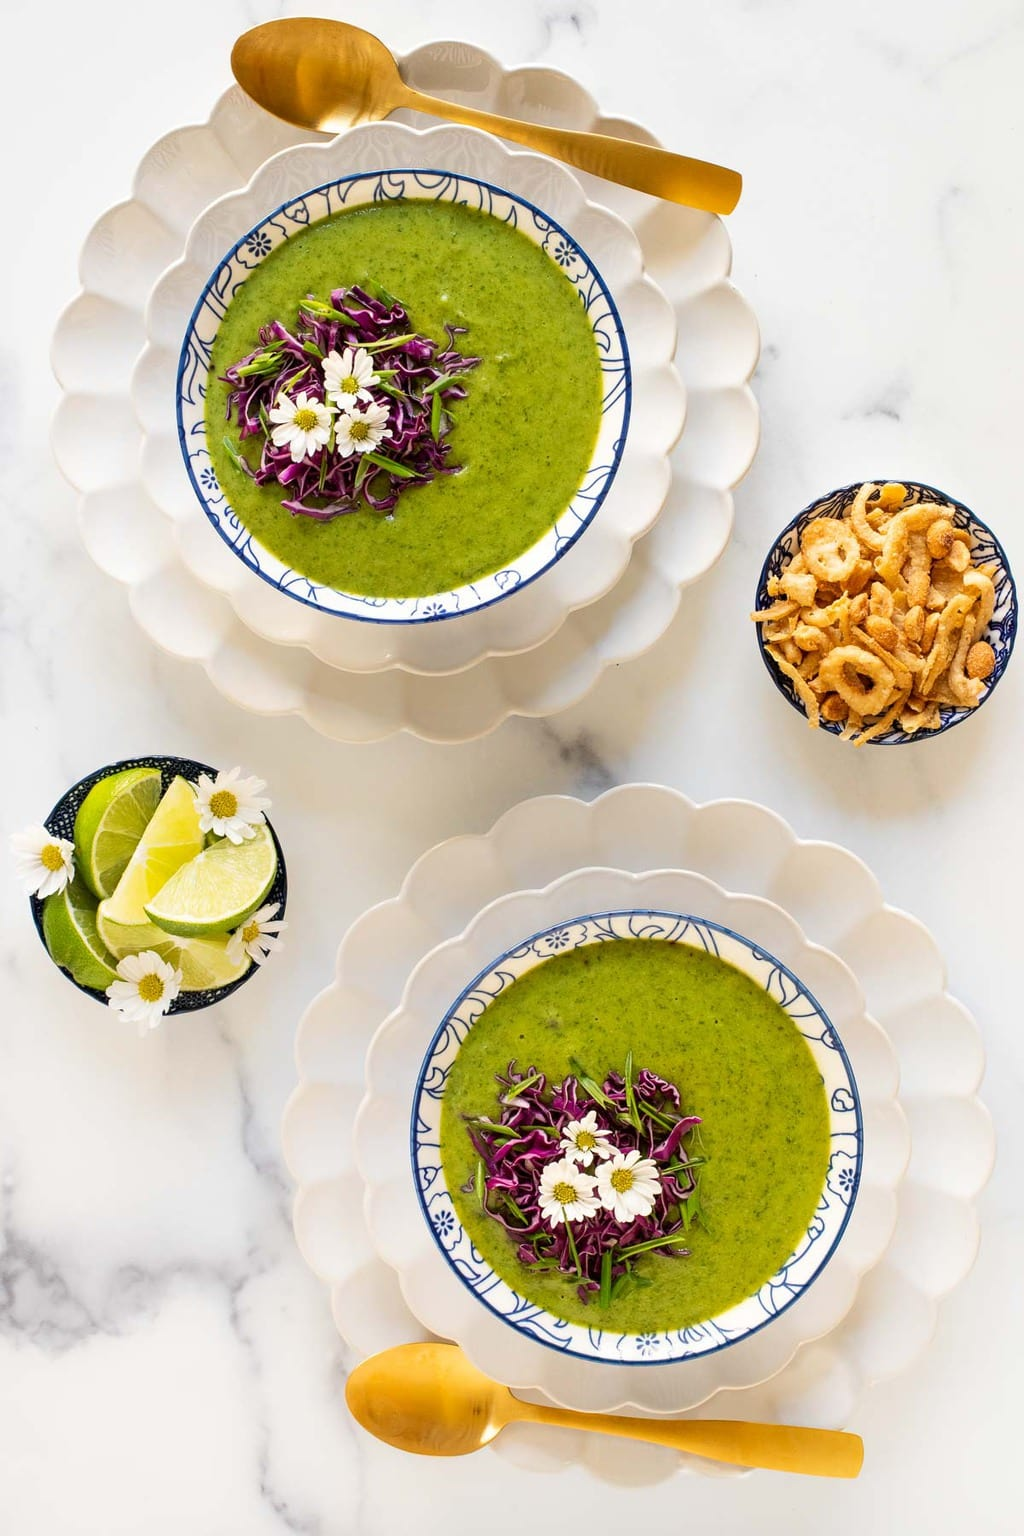 Overhead vertical photo of bowls of Thai Broccoli Spinach Soup on white scalloped plates.